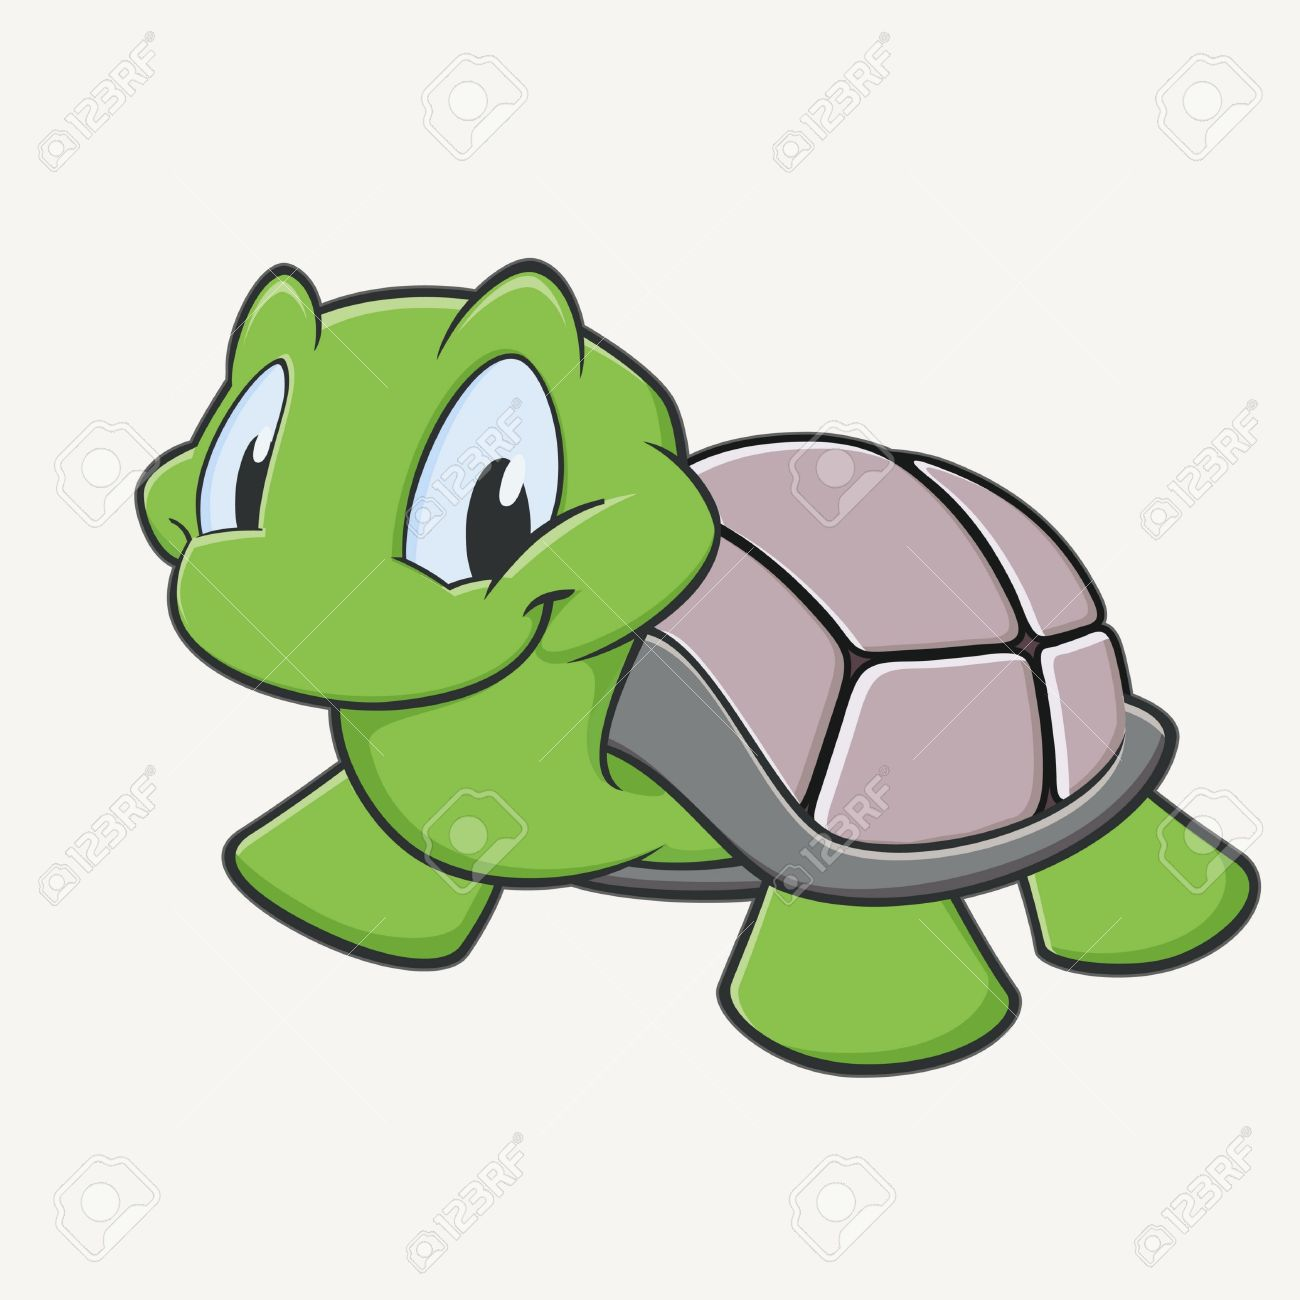 1300x1300 Vector Illustration Of A Cutely Smiling Cartoon Turtle Royalty